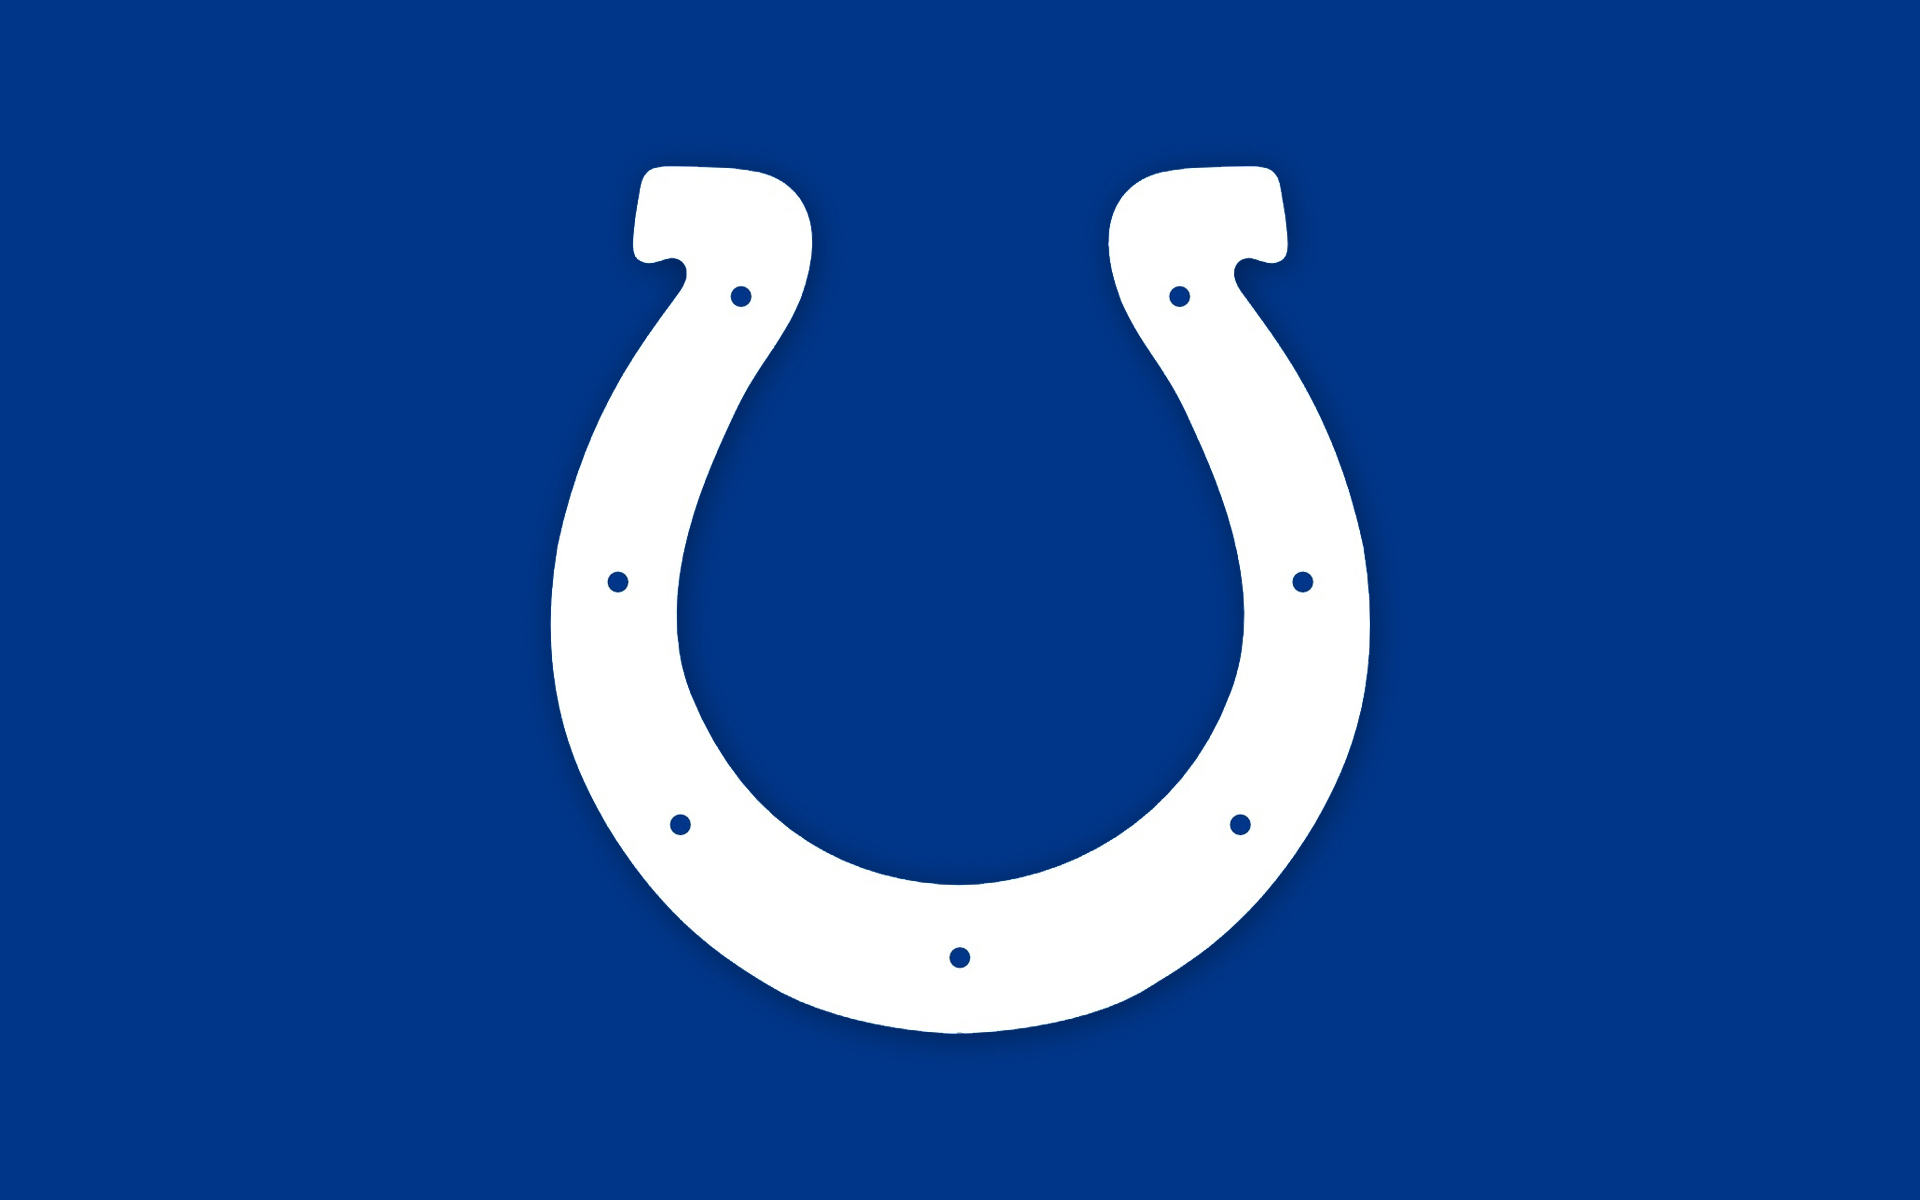 Colts Football Logo Indianapolis colts 2016 schedule printable